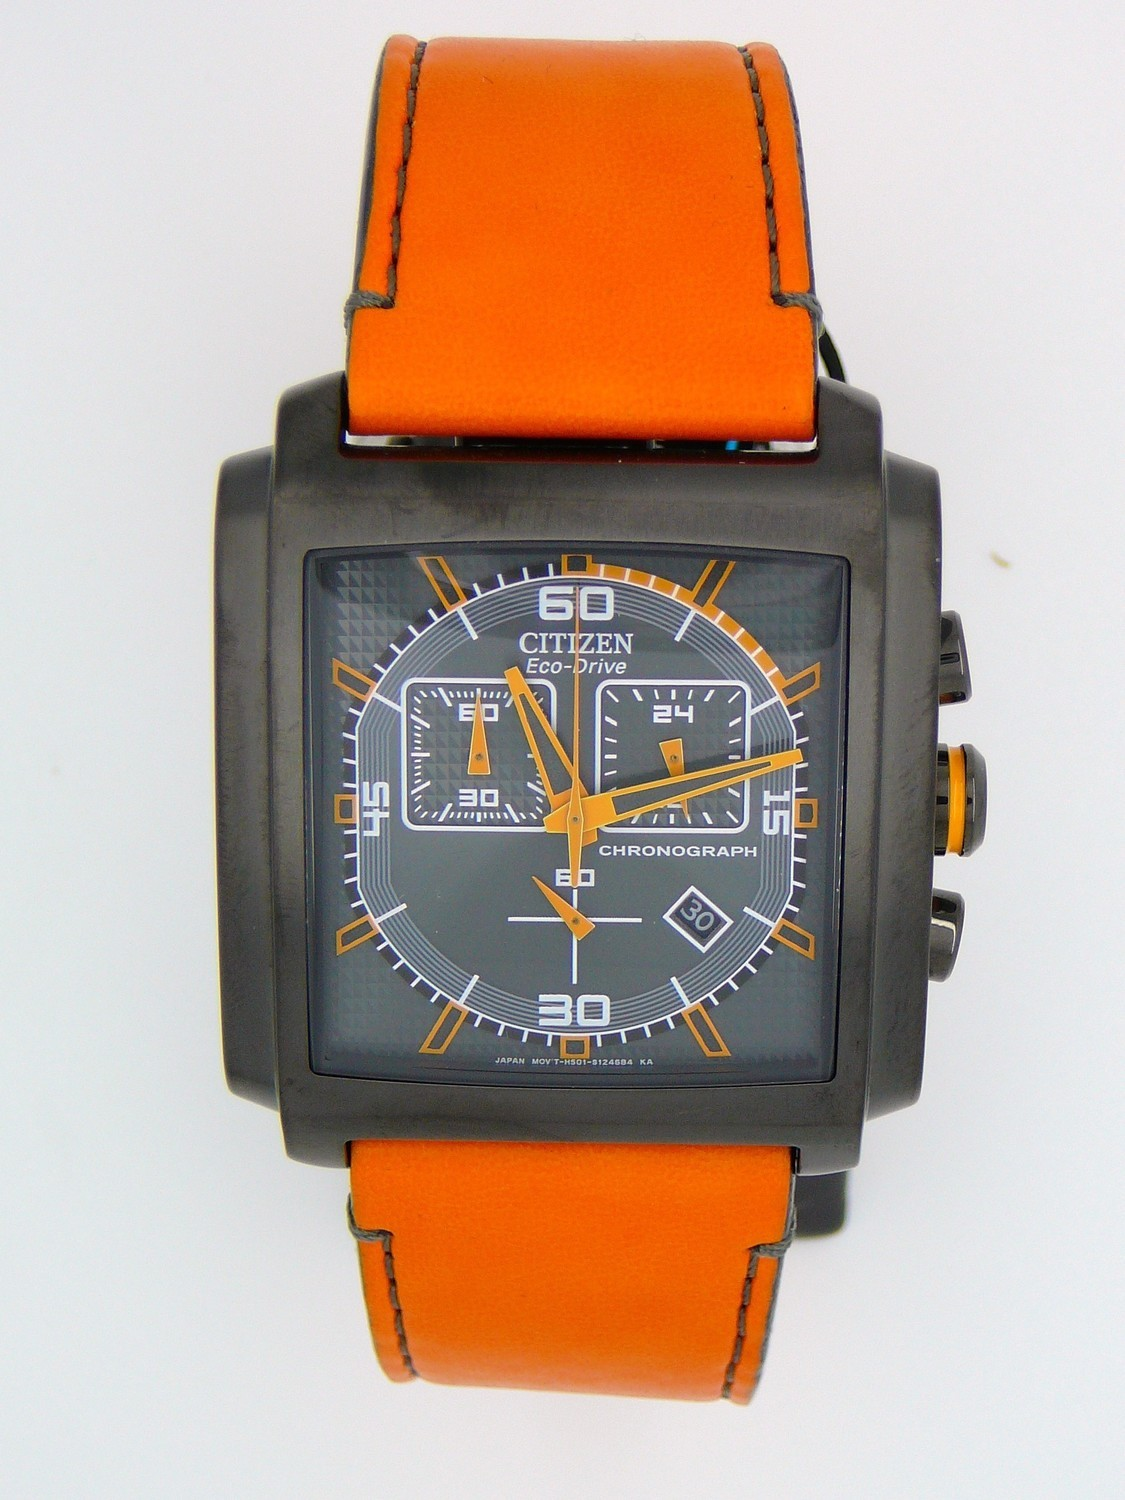 CITIZEN Elegant Orange/Blk